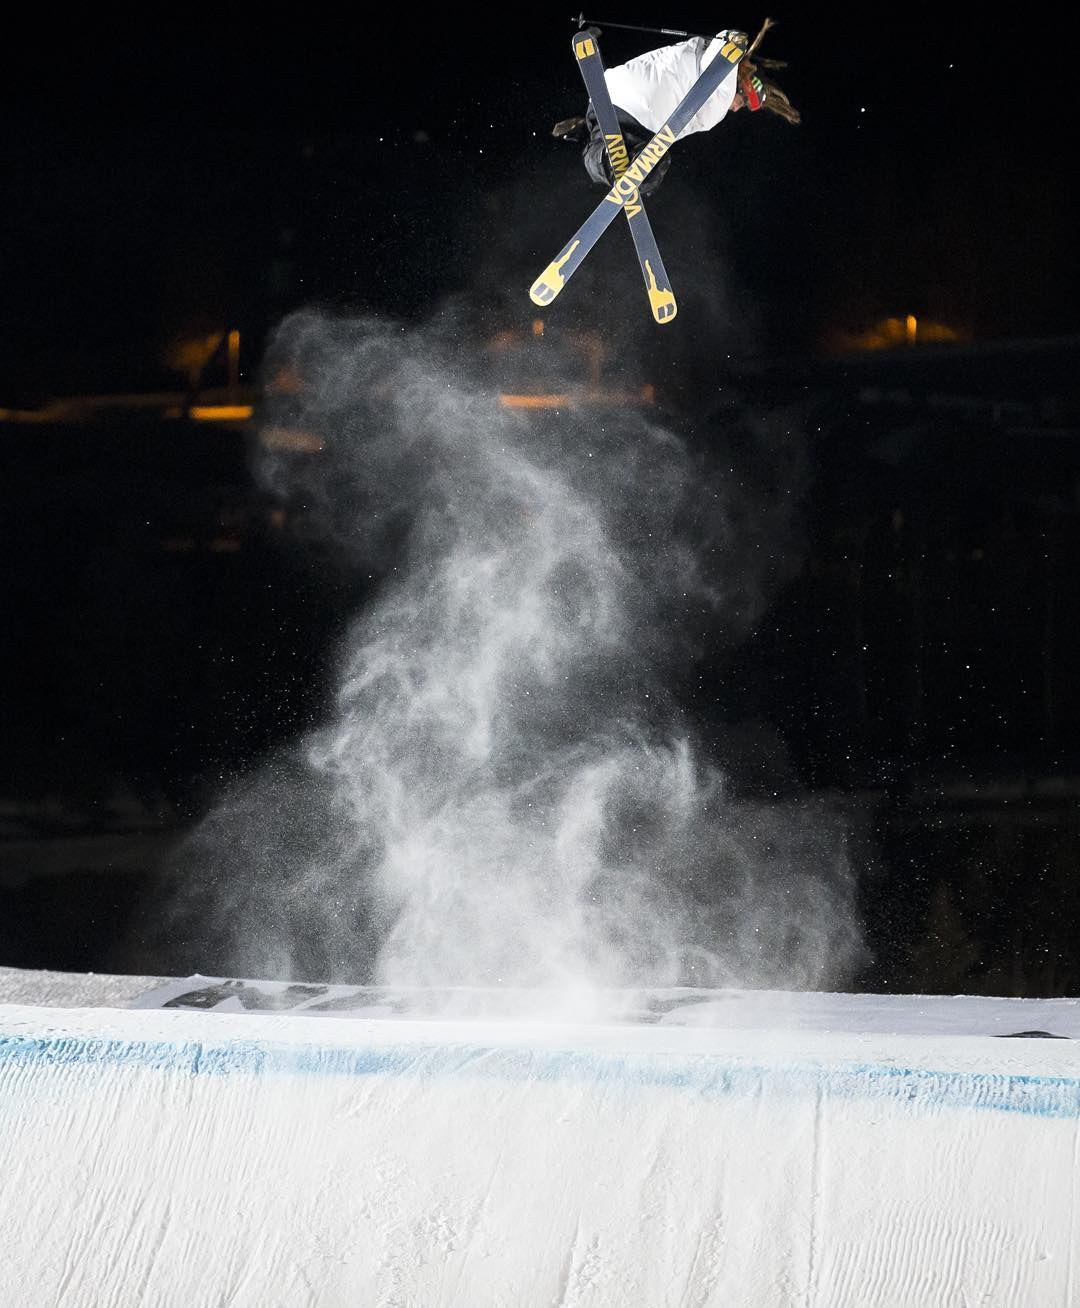 Two-time gold medalist @HenrikHarlaut1 has confirmed that he will compete in Ski Big Air at #XGamesOslo Feb. 24-28!